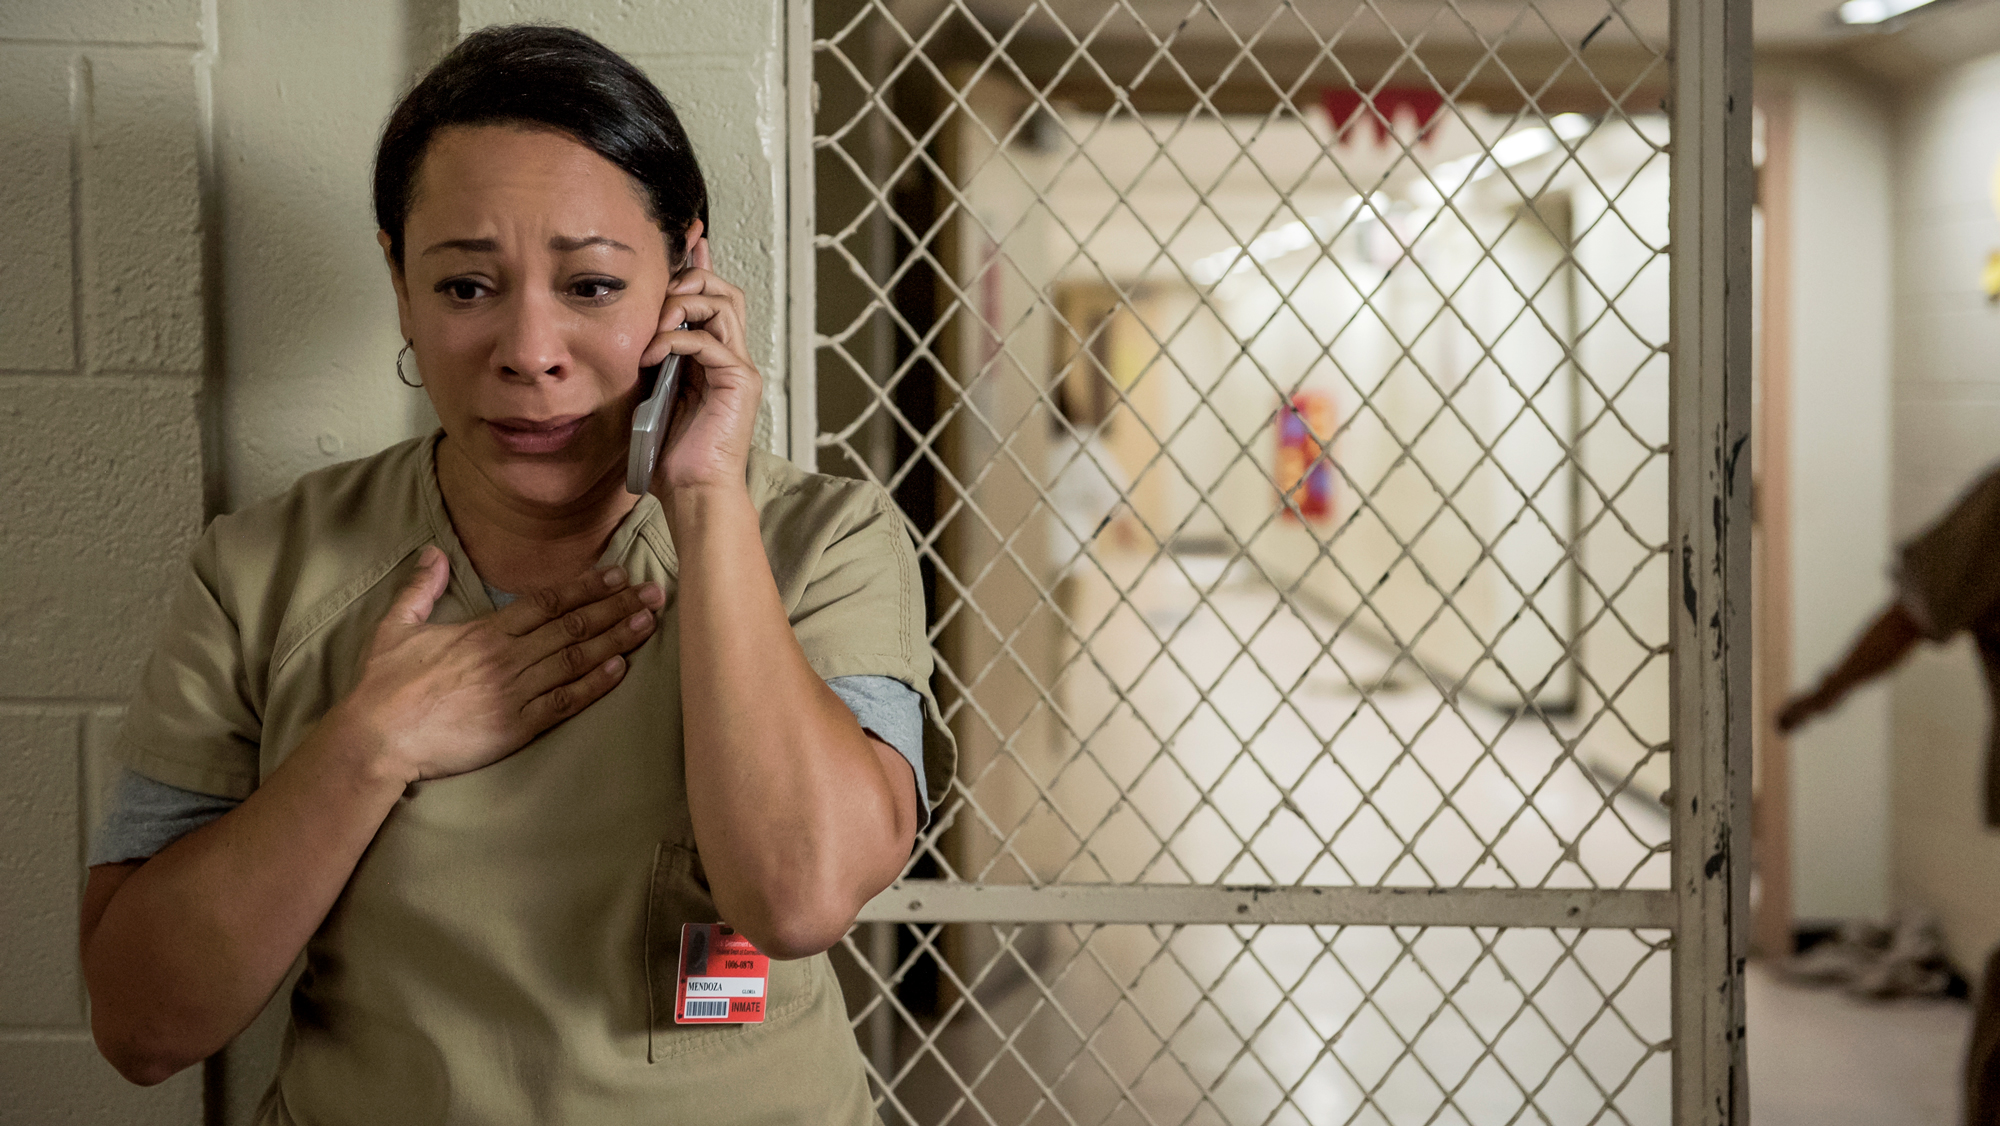 The Women Fight Back in Powerful <em>Orange Is the New Black</em> Season 5 Trailer